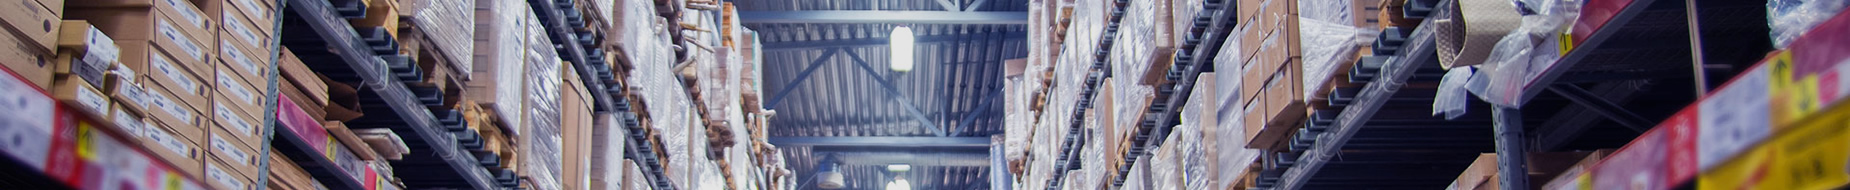 warehouse-page-banner